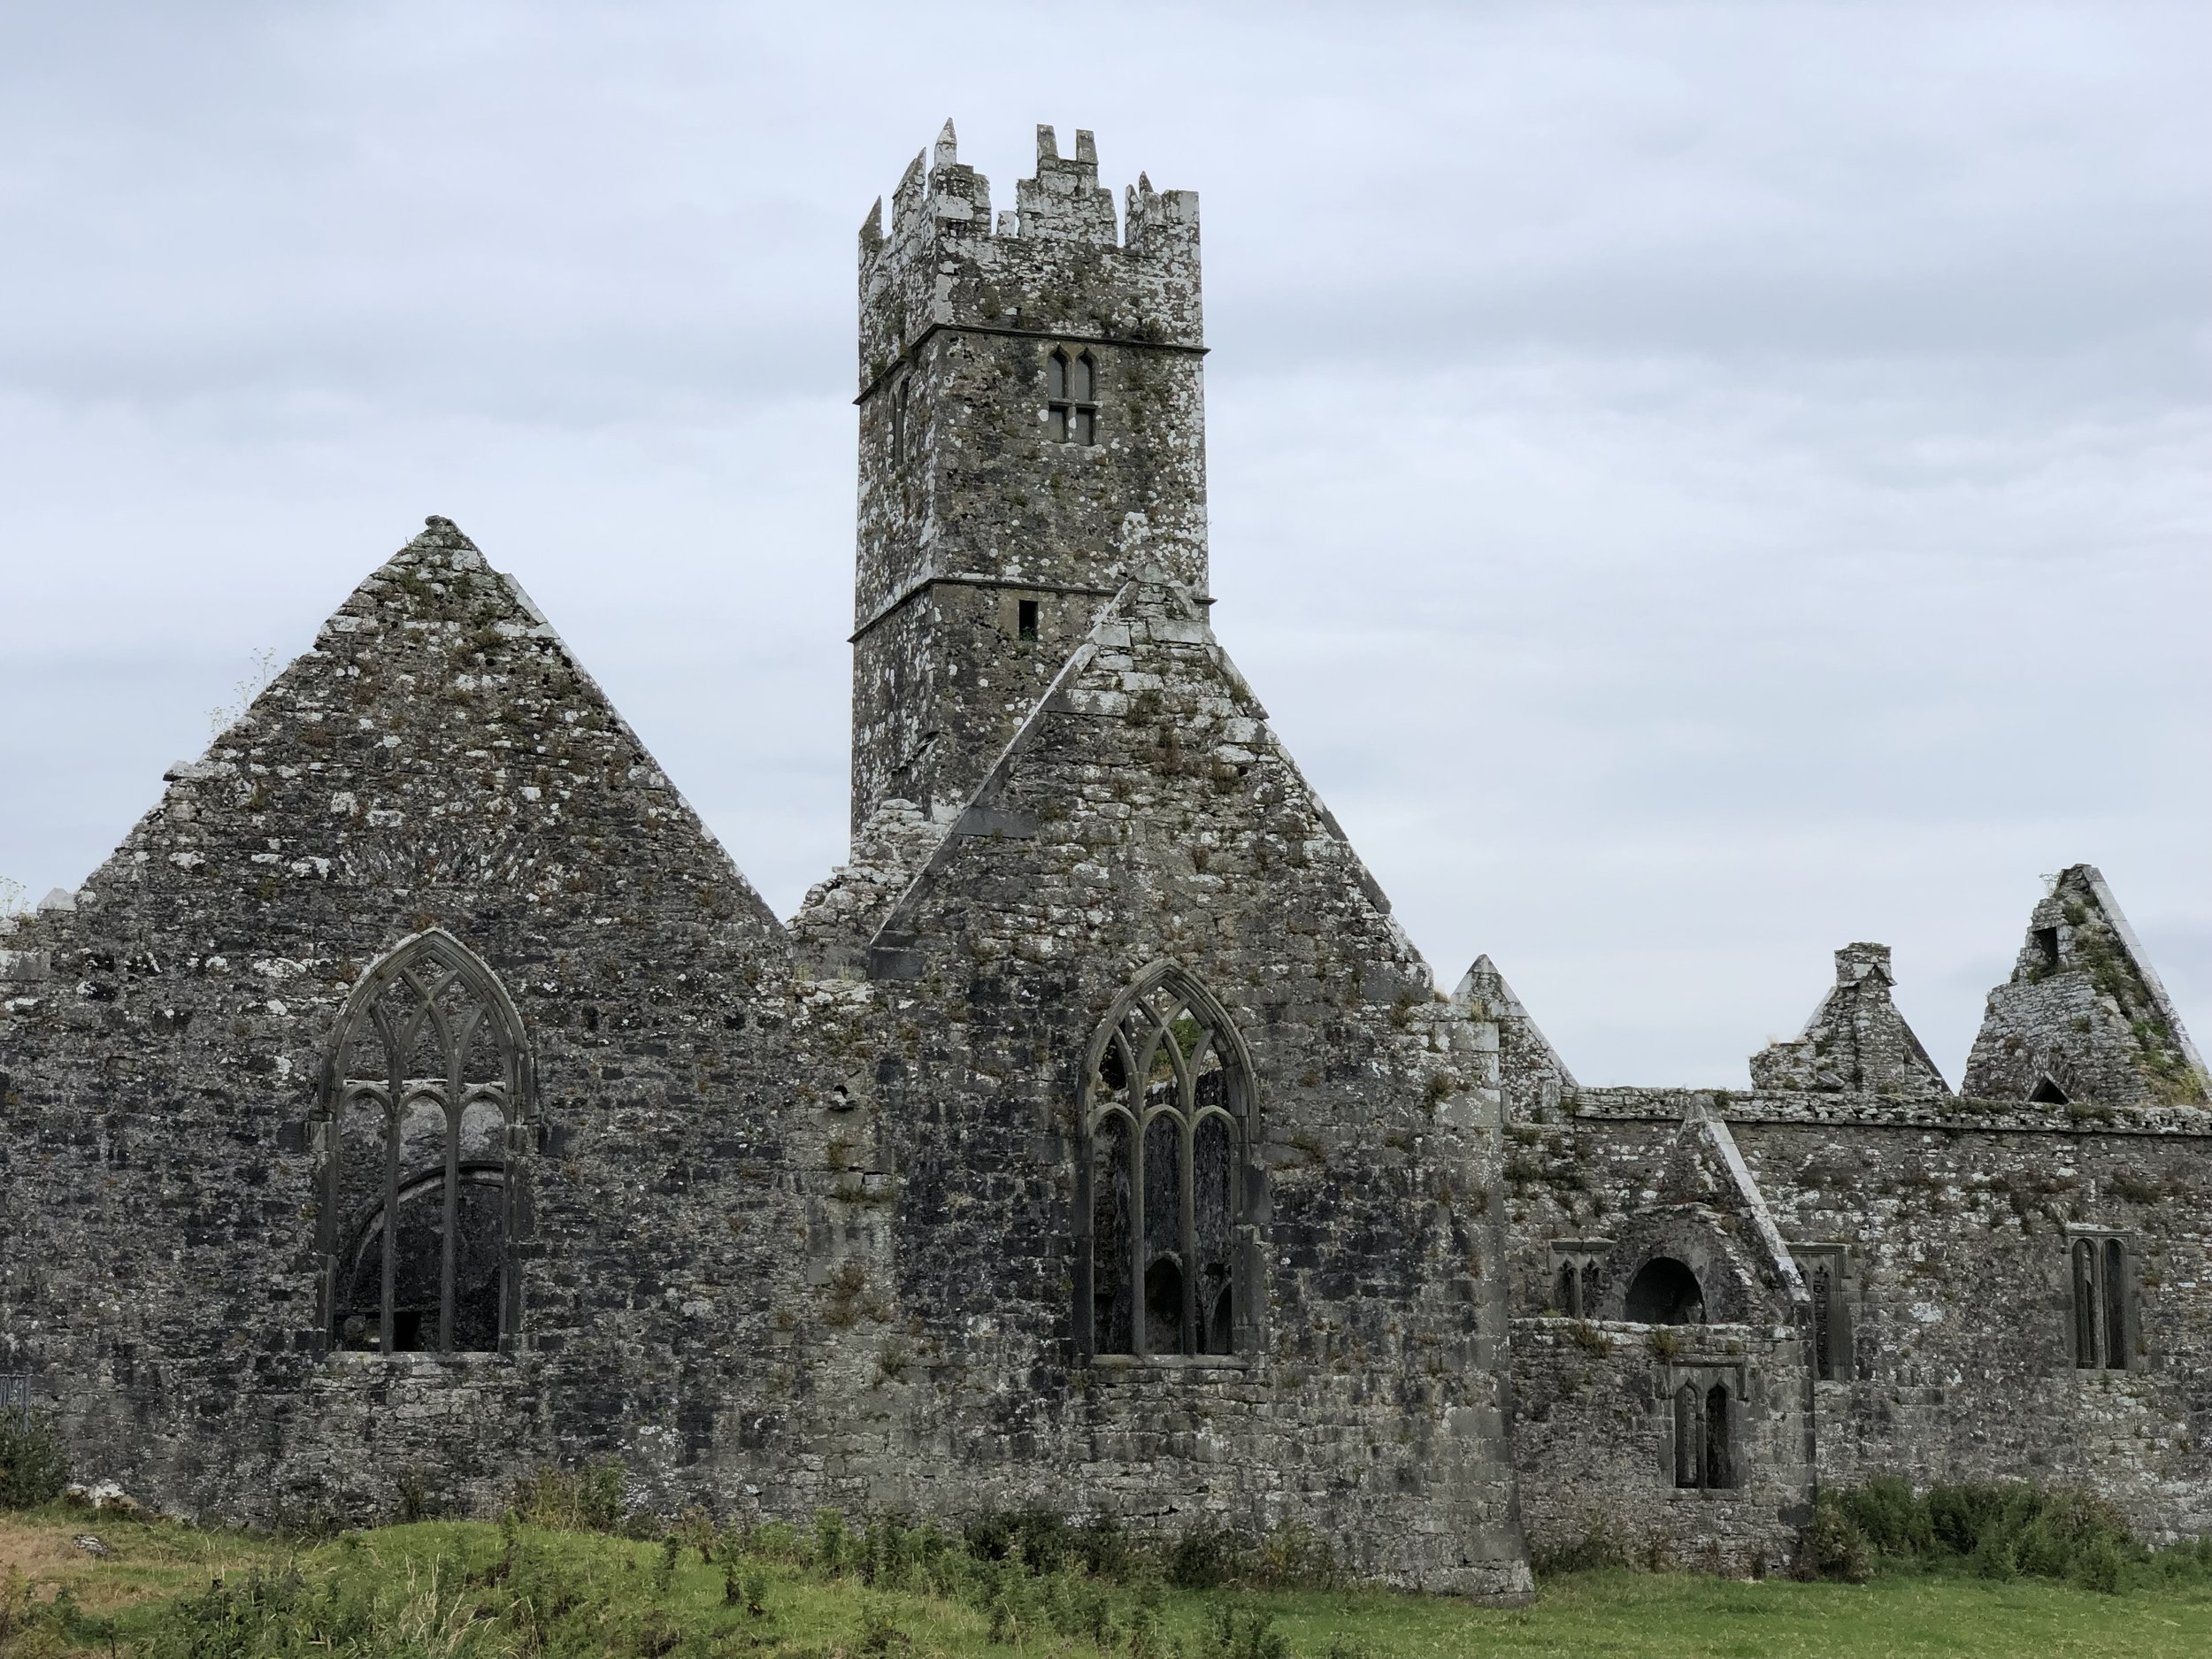 This is the ruins of a friary near Tuam. It was first built in the eleventh century and expanded and rebuilt several times thereafter.